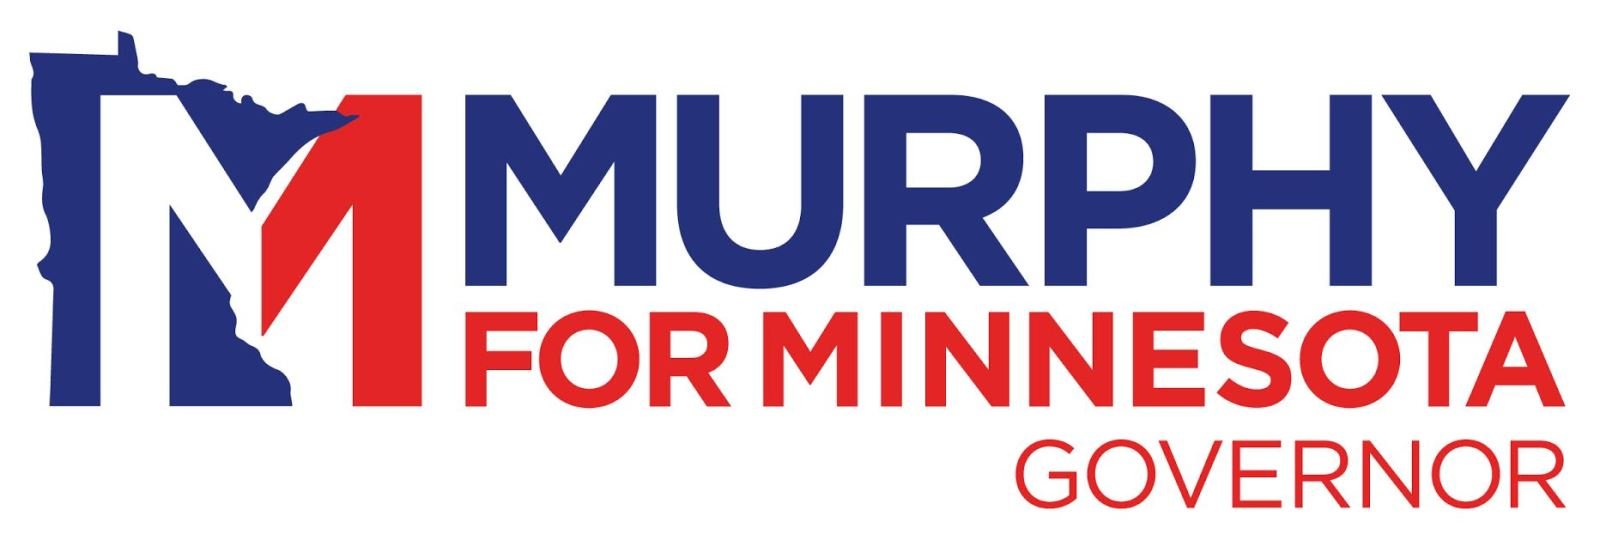 Murphy for Minnesota